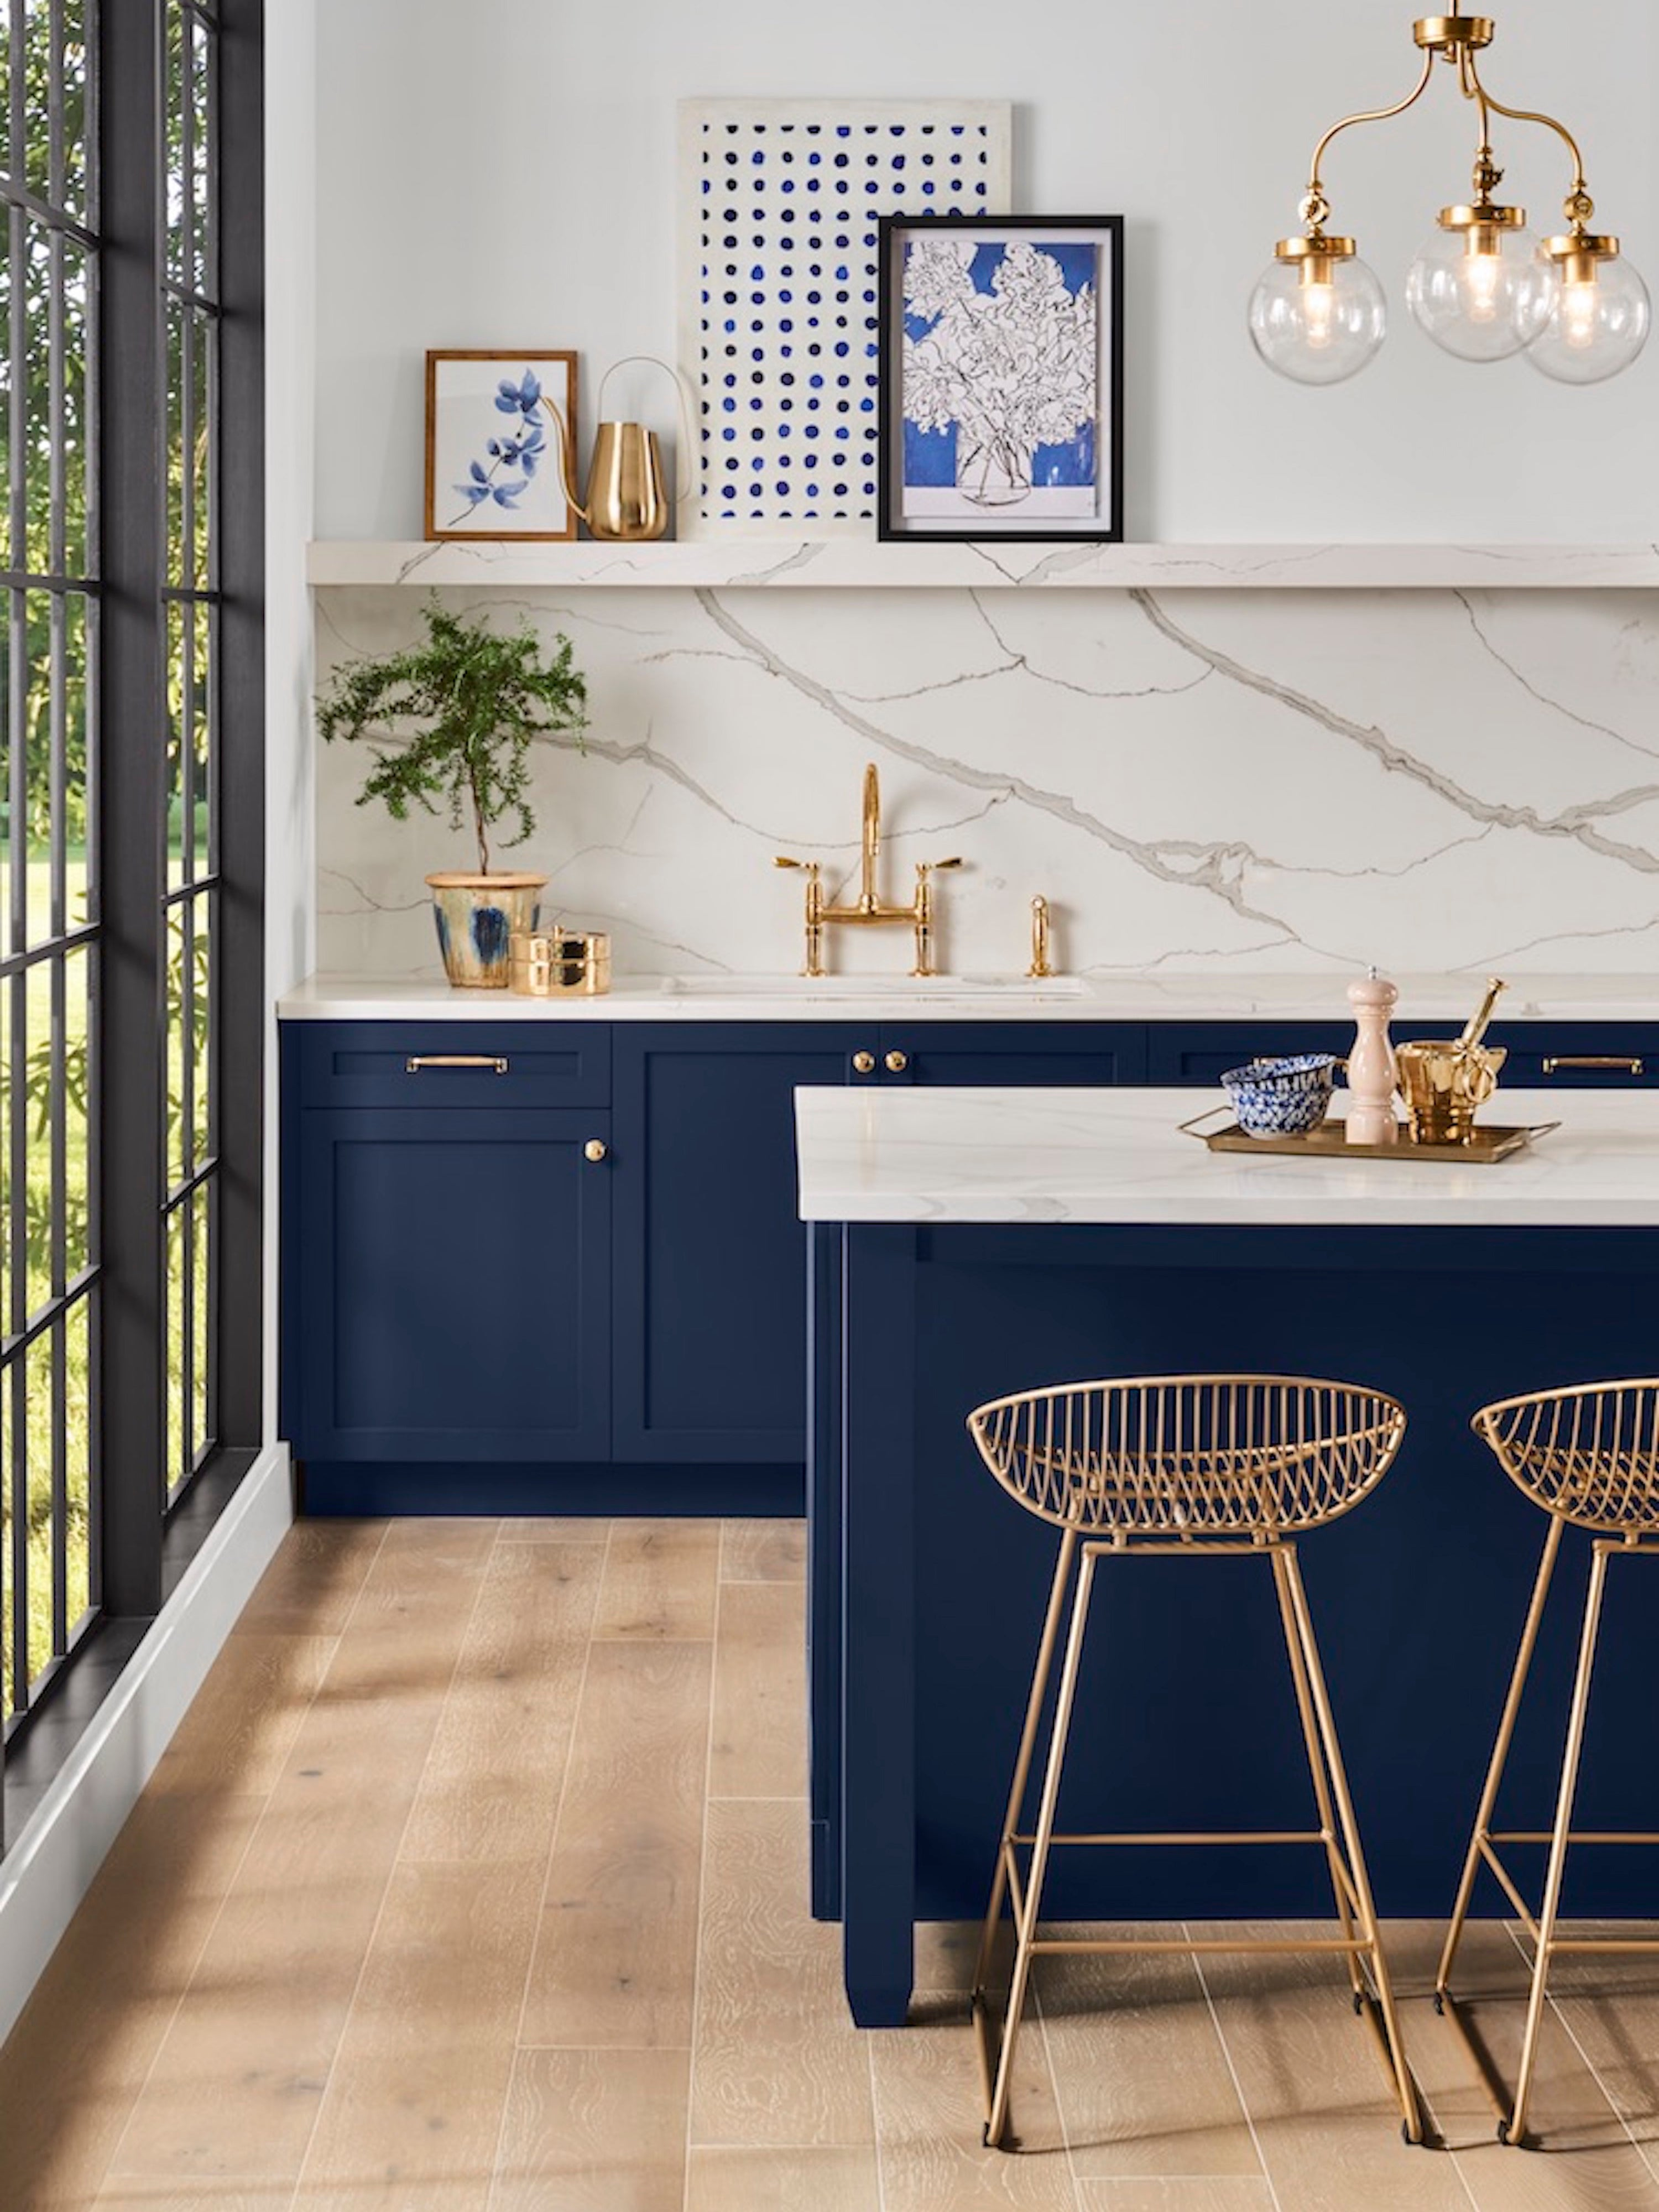 How 3 Designers Would Decorate With Sherwin-Williams's Color of the Year